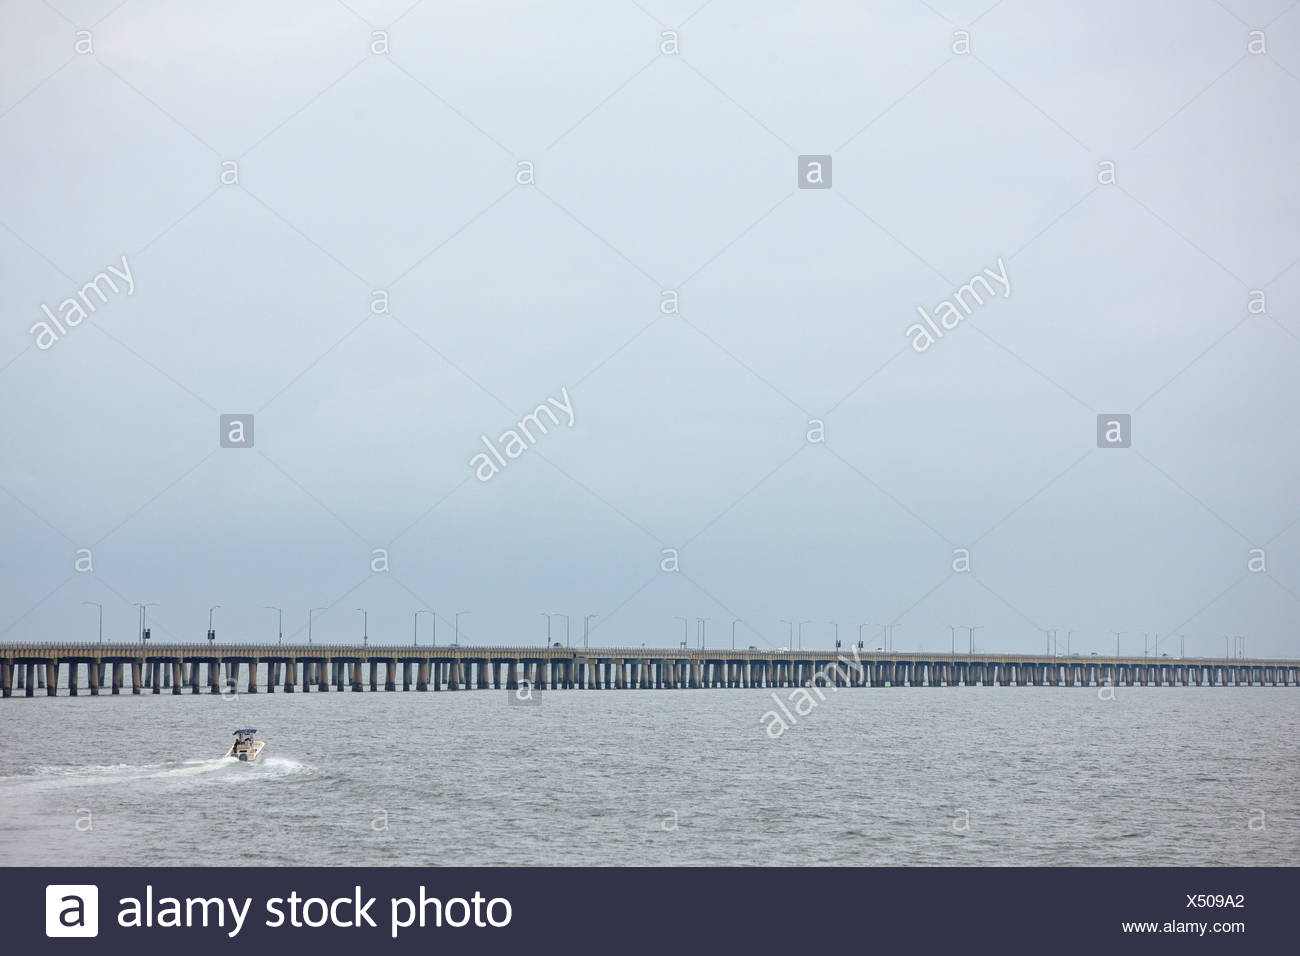 Small Boat Plies the Waters Near the Bridge Portion of the Chesapeake Bay Bridge Tunnel - Stock Image